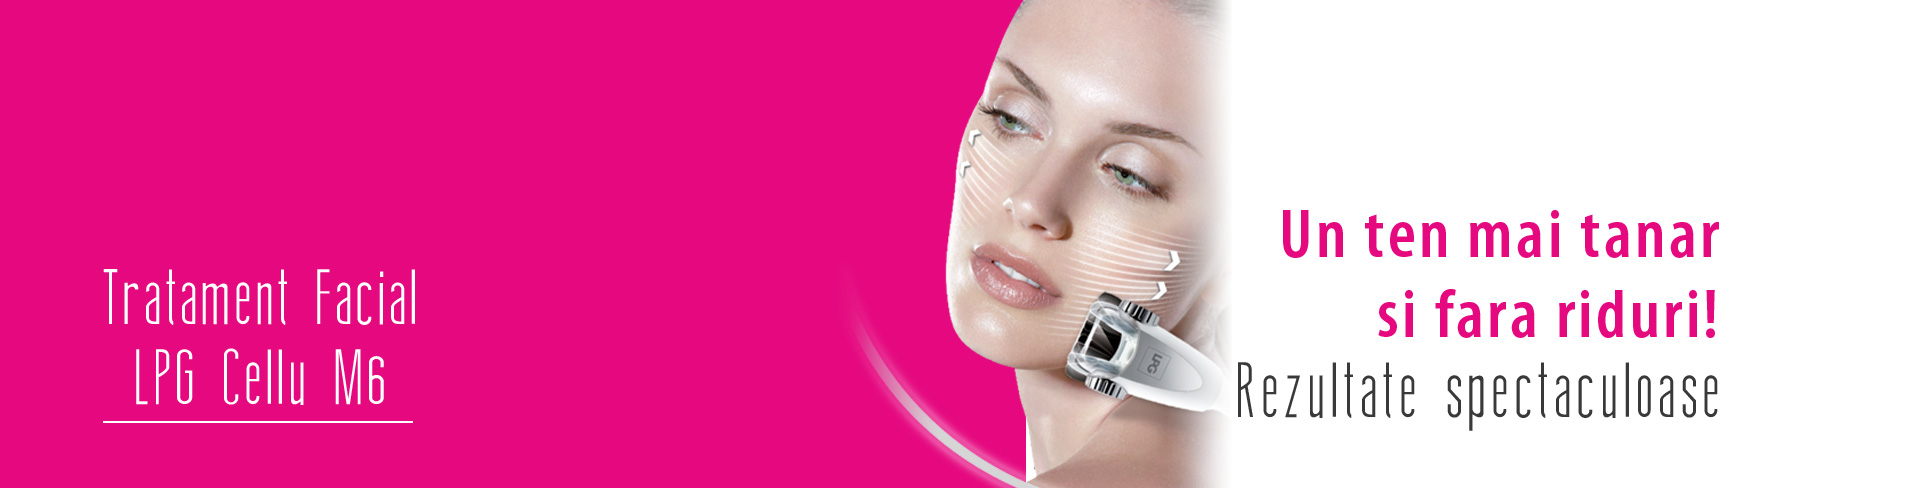 Tratament facial Lpg Cellu M6 » Bioestetika.ro